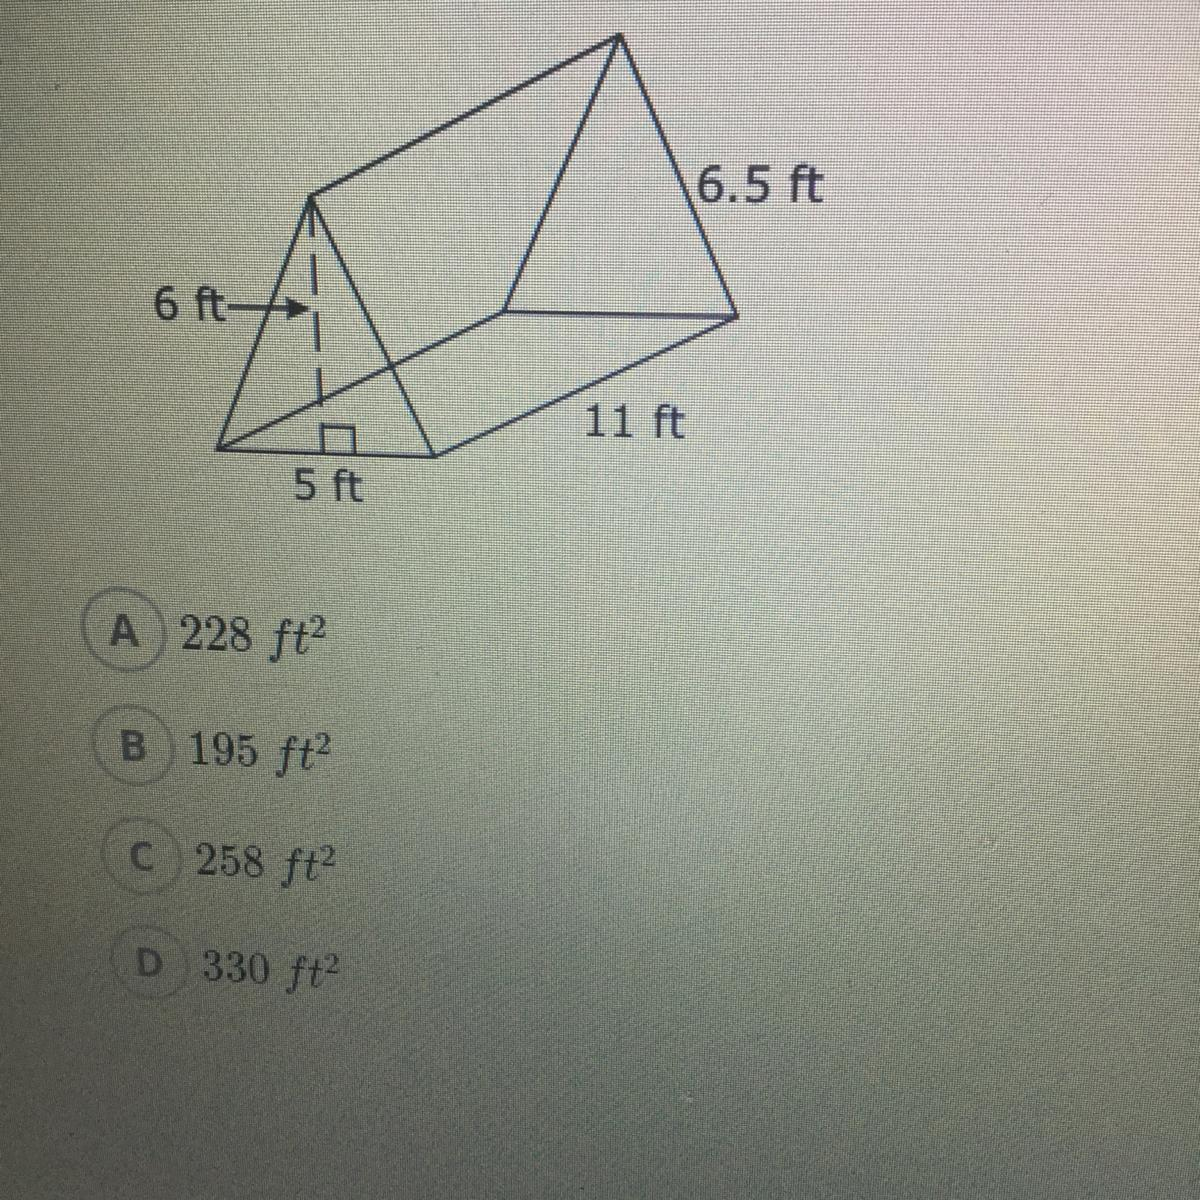 What Is The Surface Area Of This Triangular Prism A 228